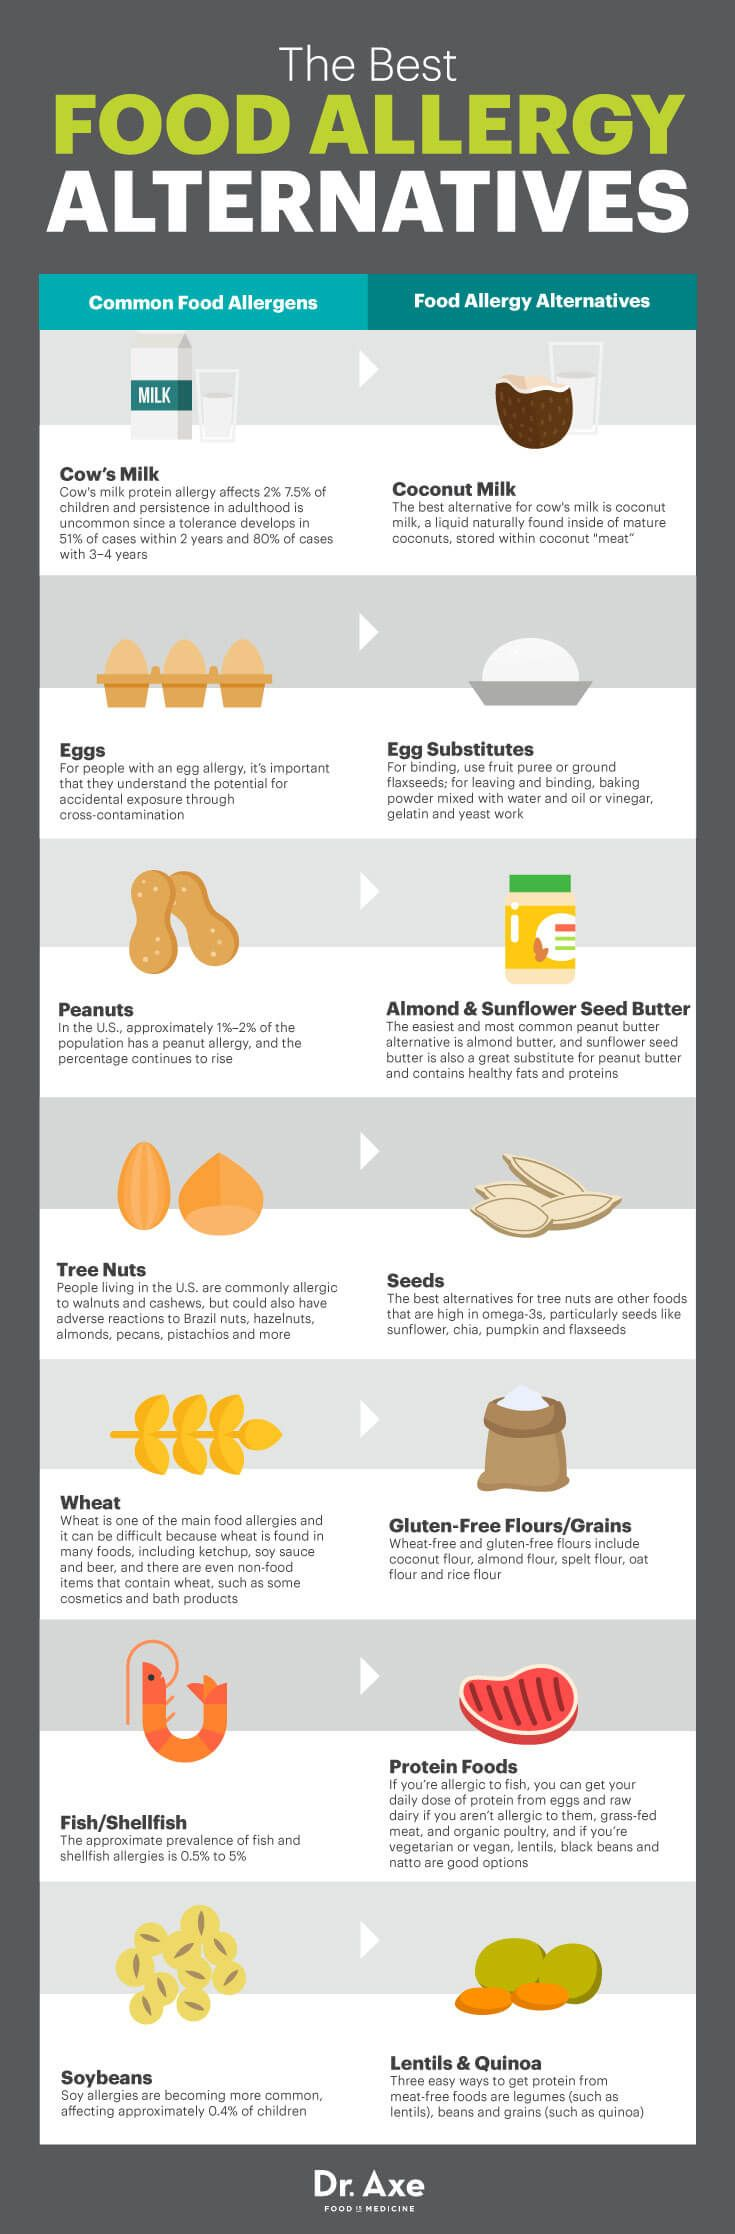 8Common Foods You Can Use toEliminate Health Issues